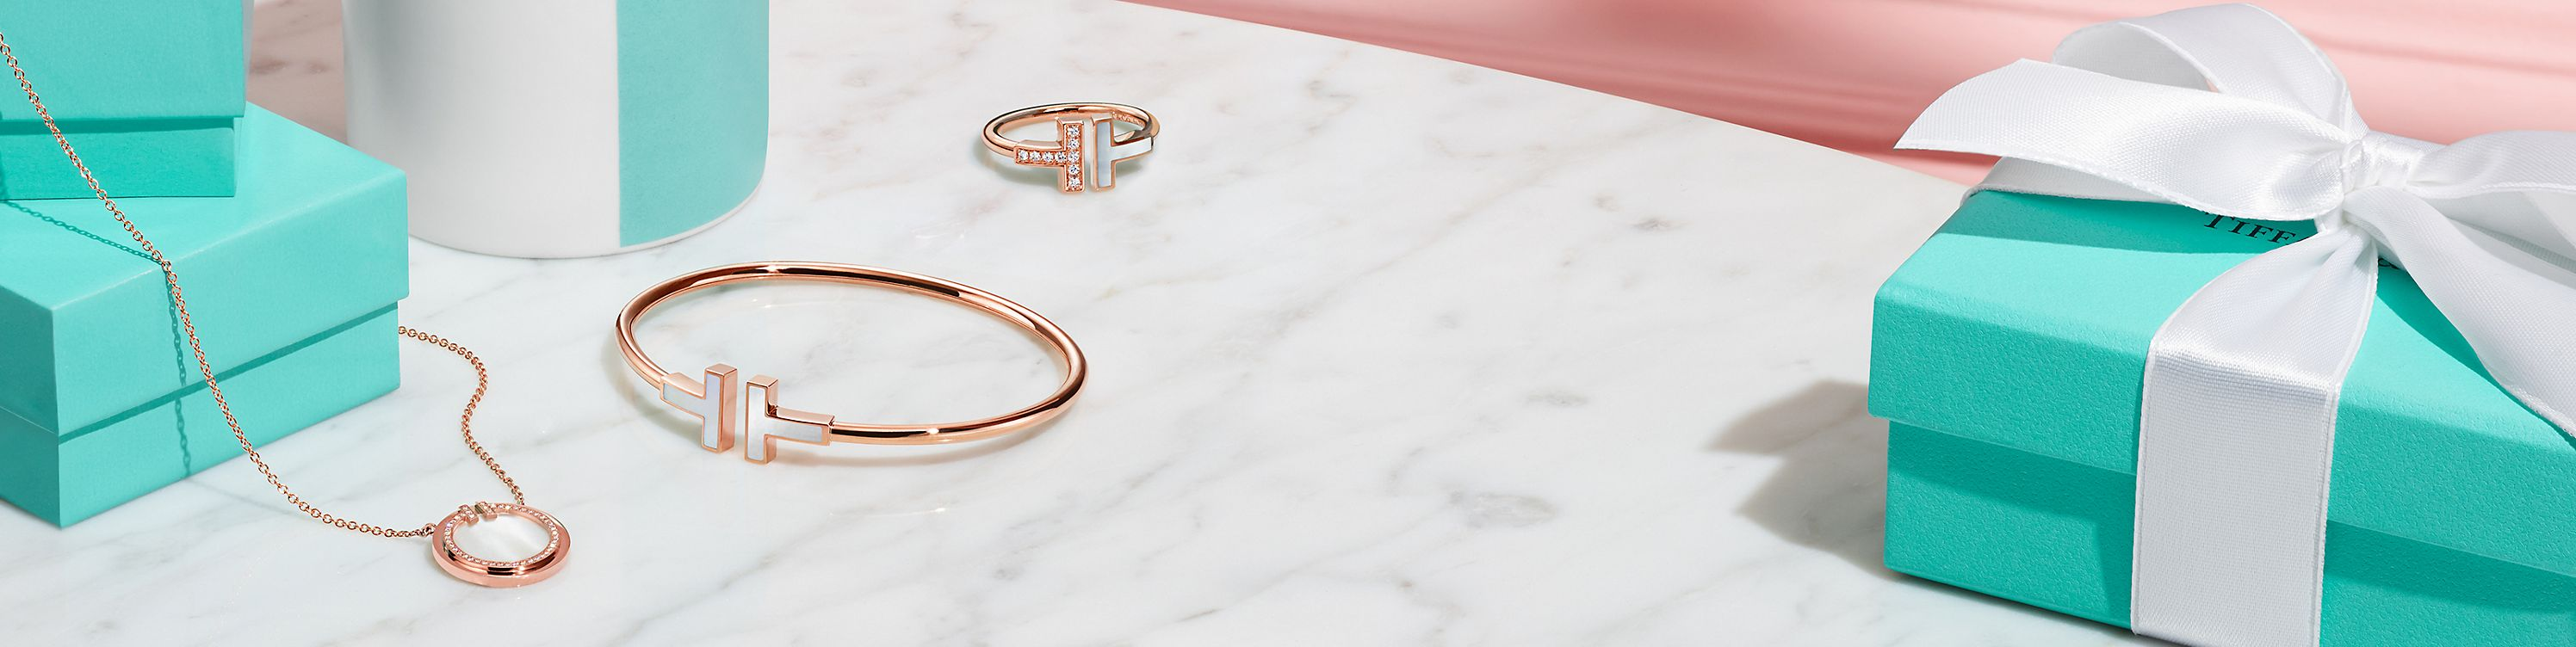 Tiffany & Co. Gift Ideas for Her & Him